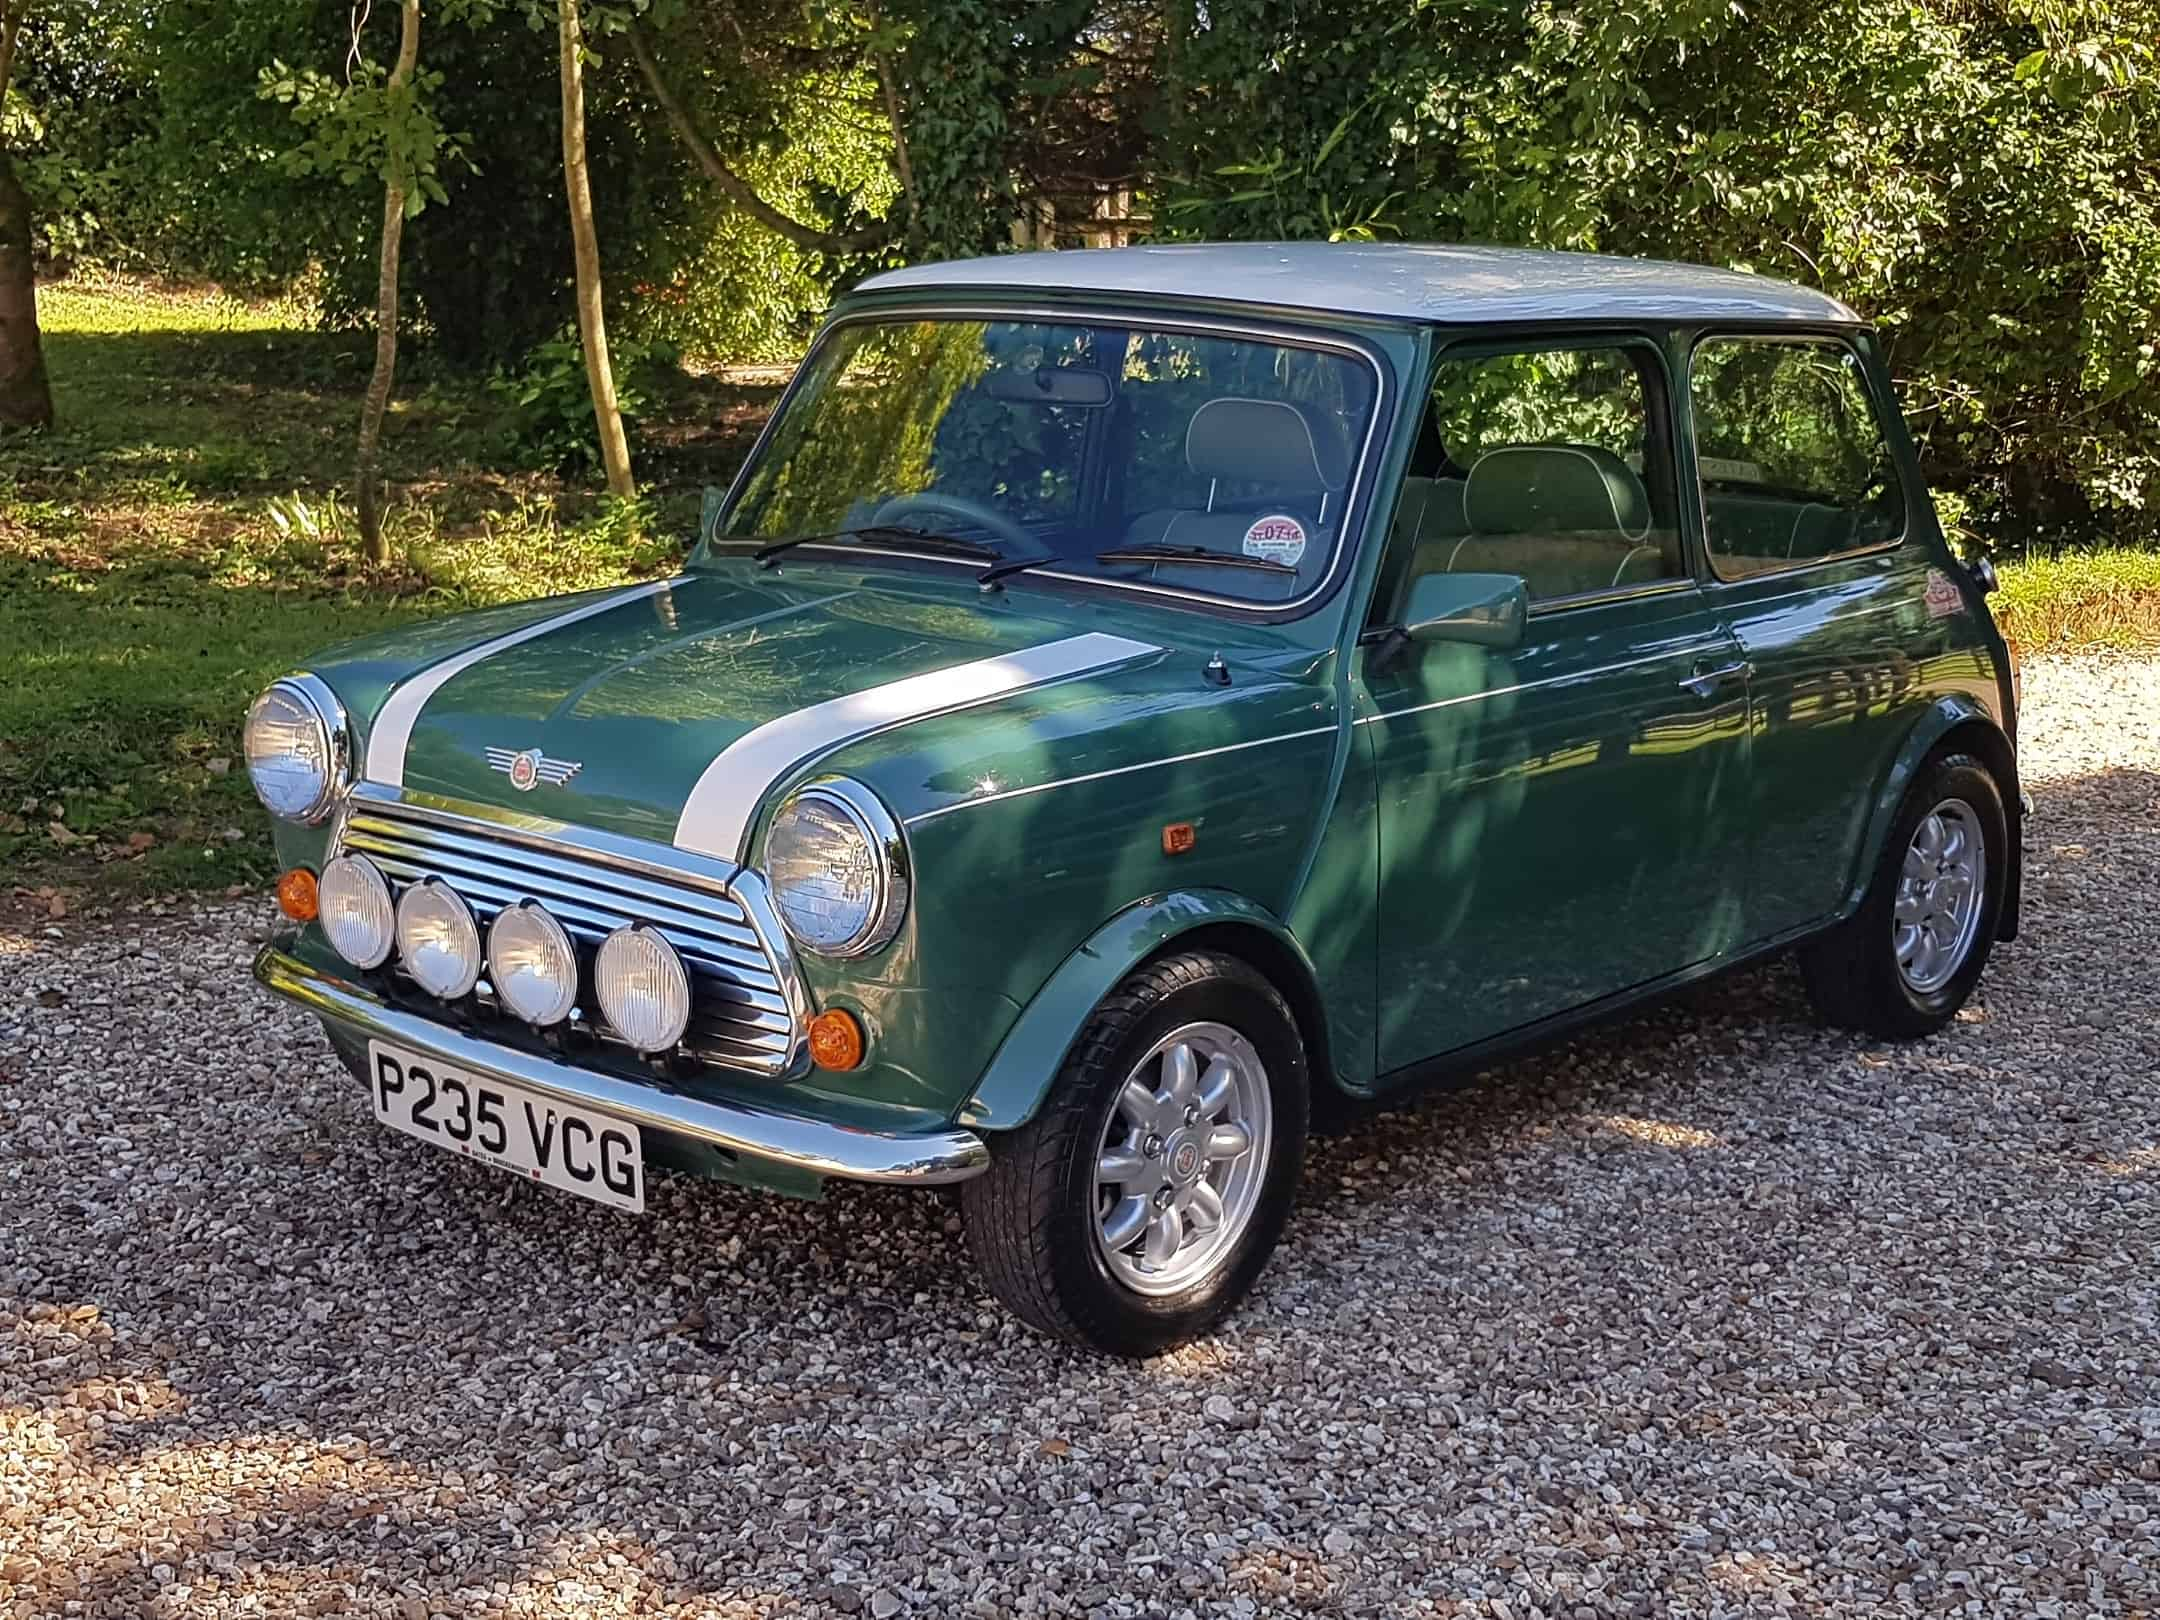 ** NOW SOLD **  – Very Rare Mini Cooper 35 – 1 of 200 UK cars ever made